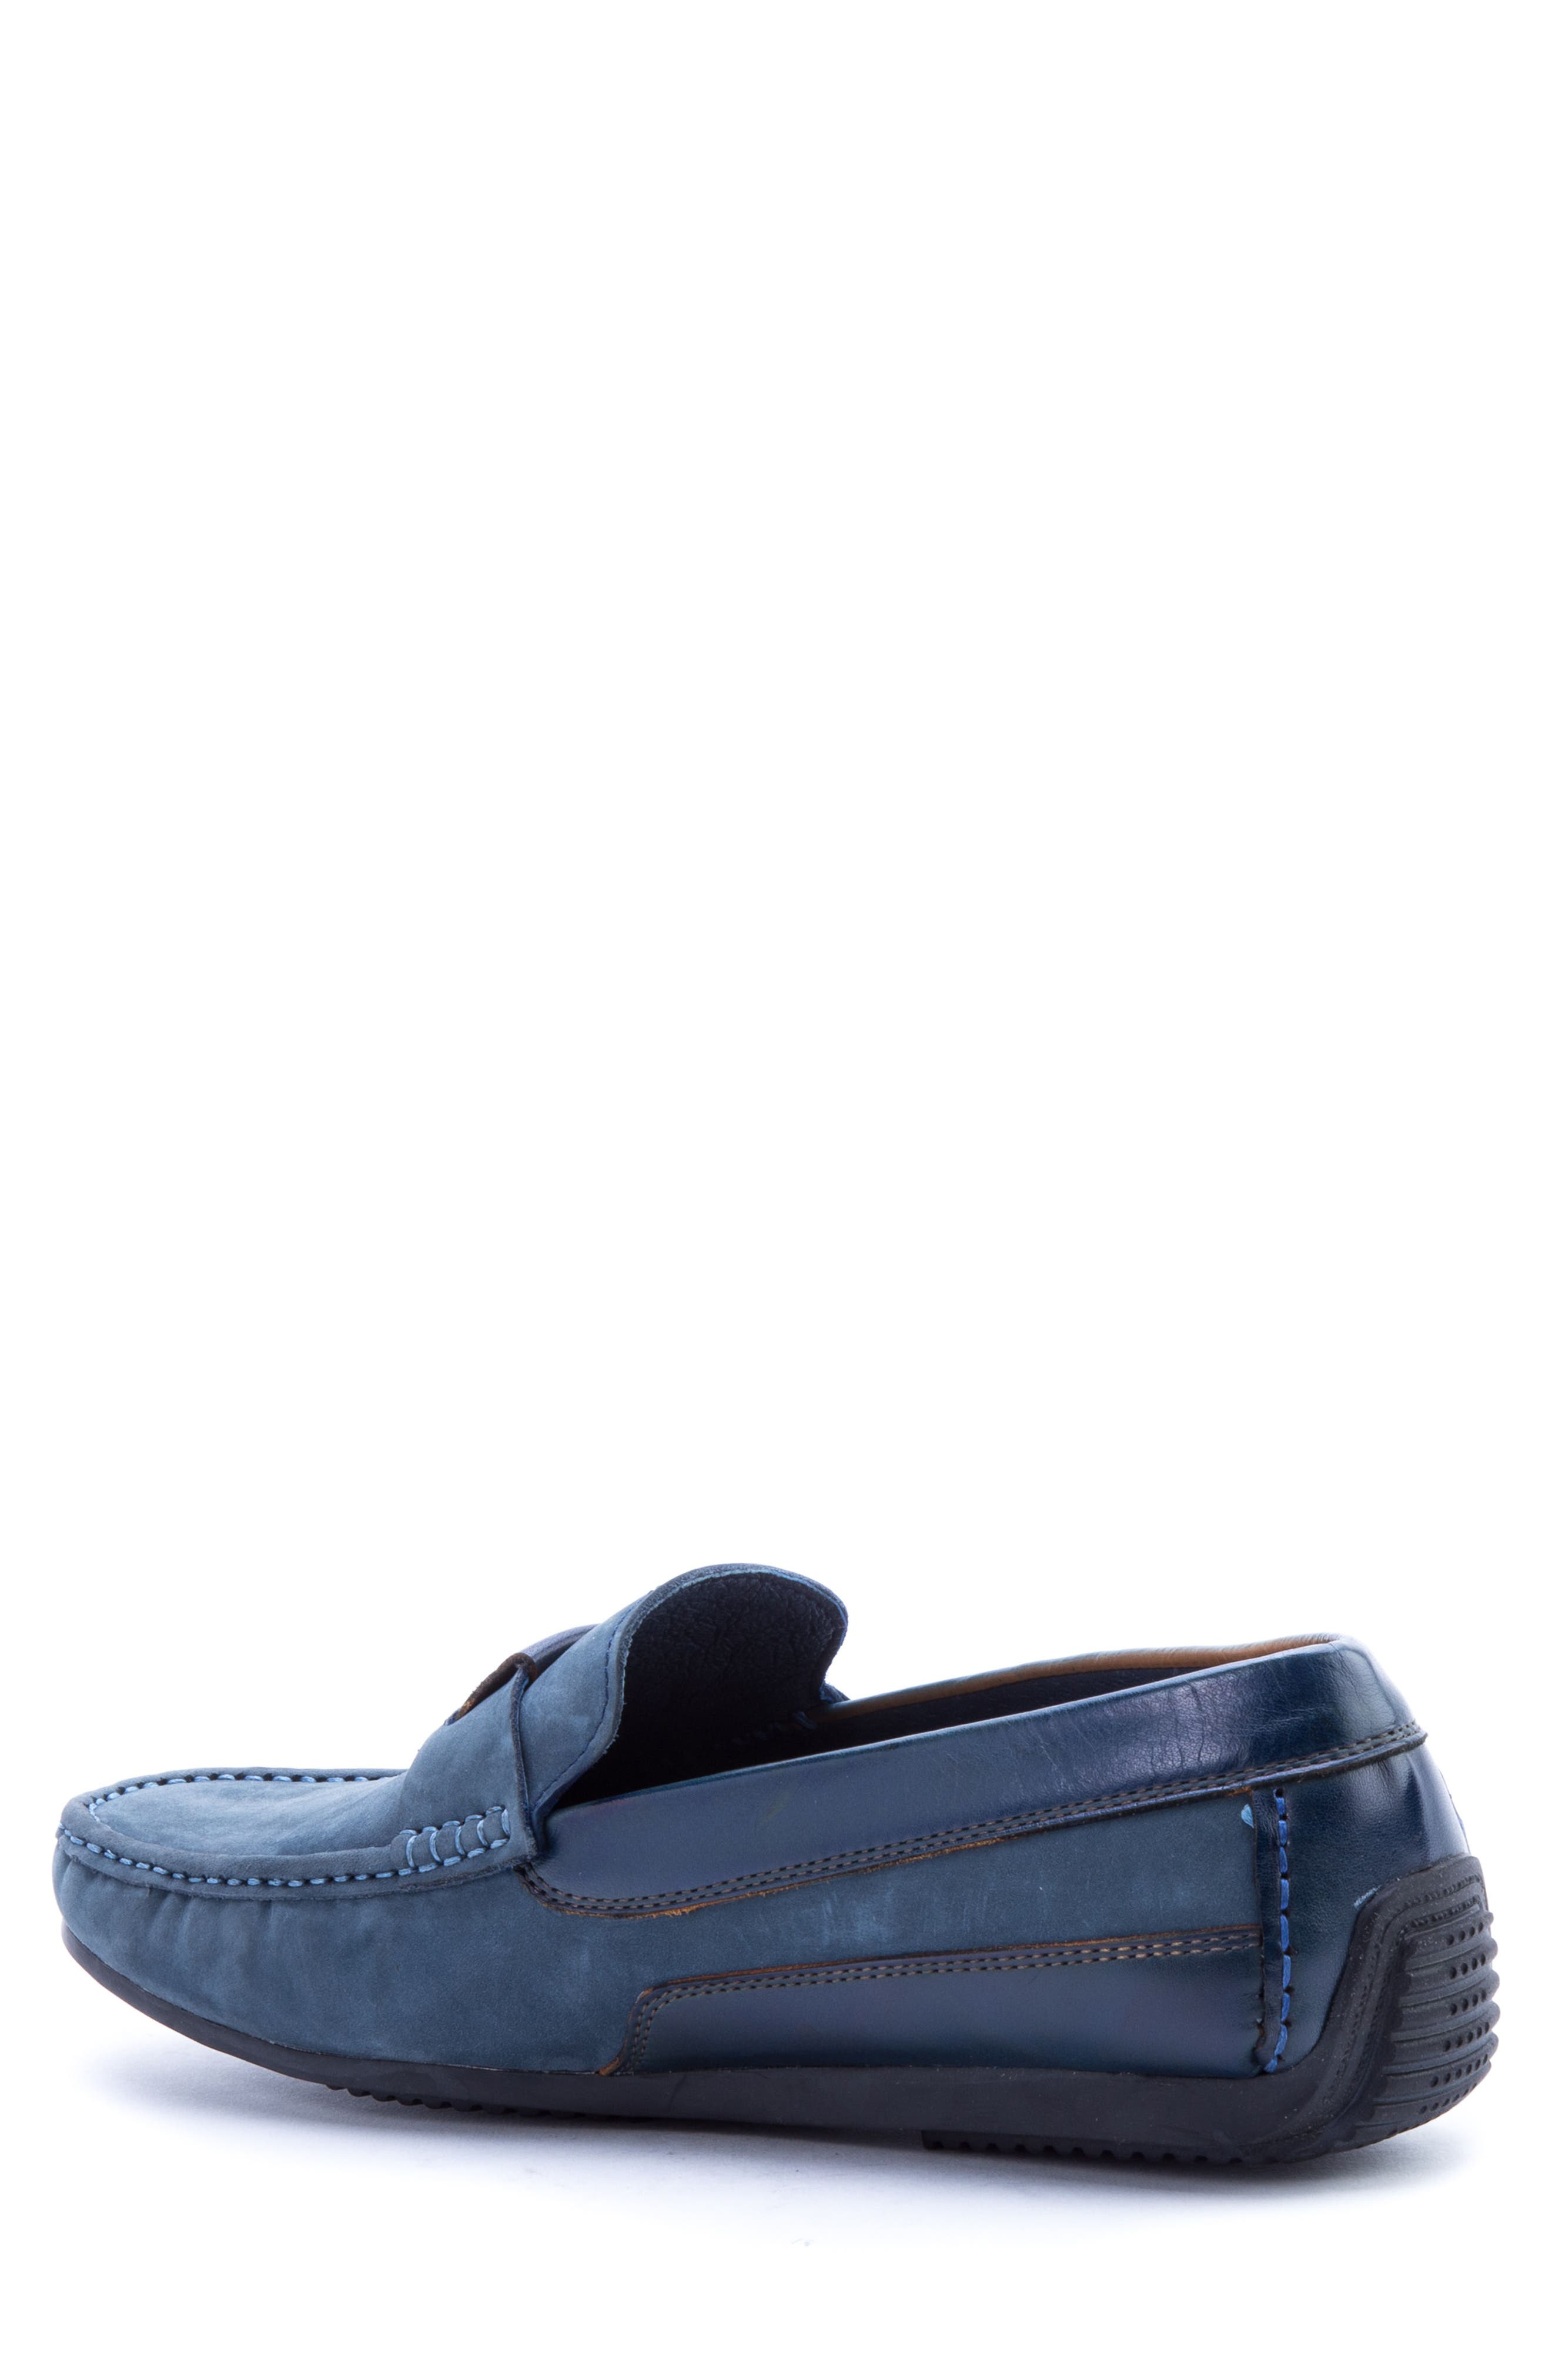 Seurat Driving Loafer,                             Alternate thumbnail 2, color,                             Blue Suede/ Leather